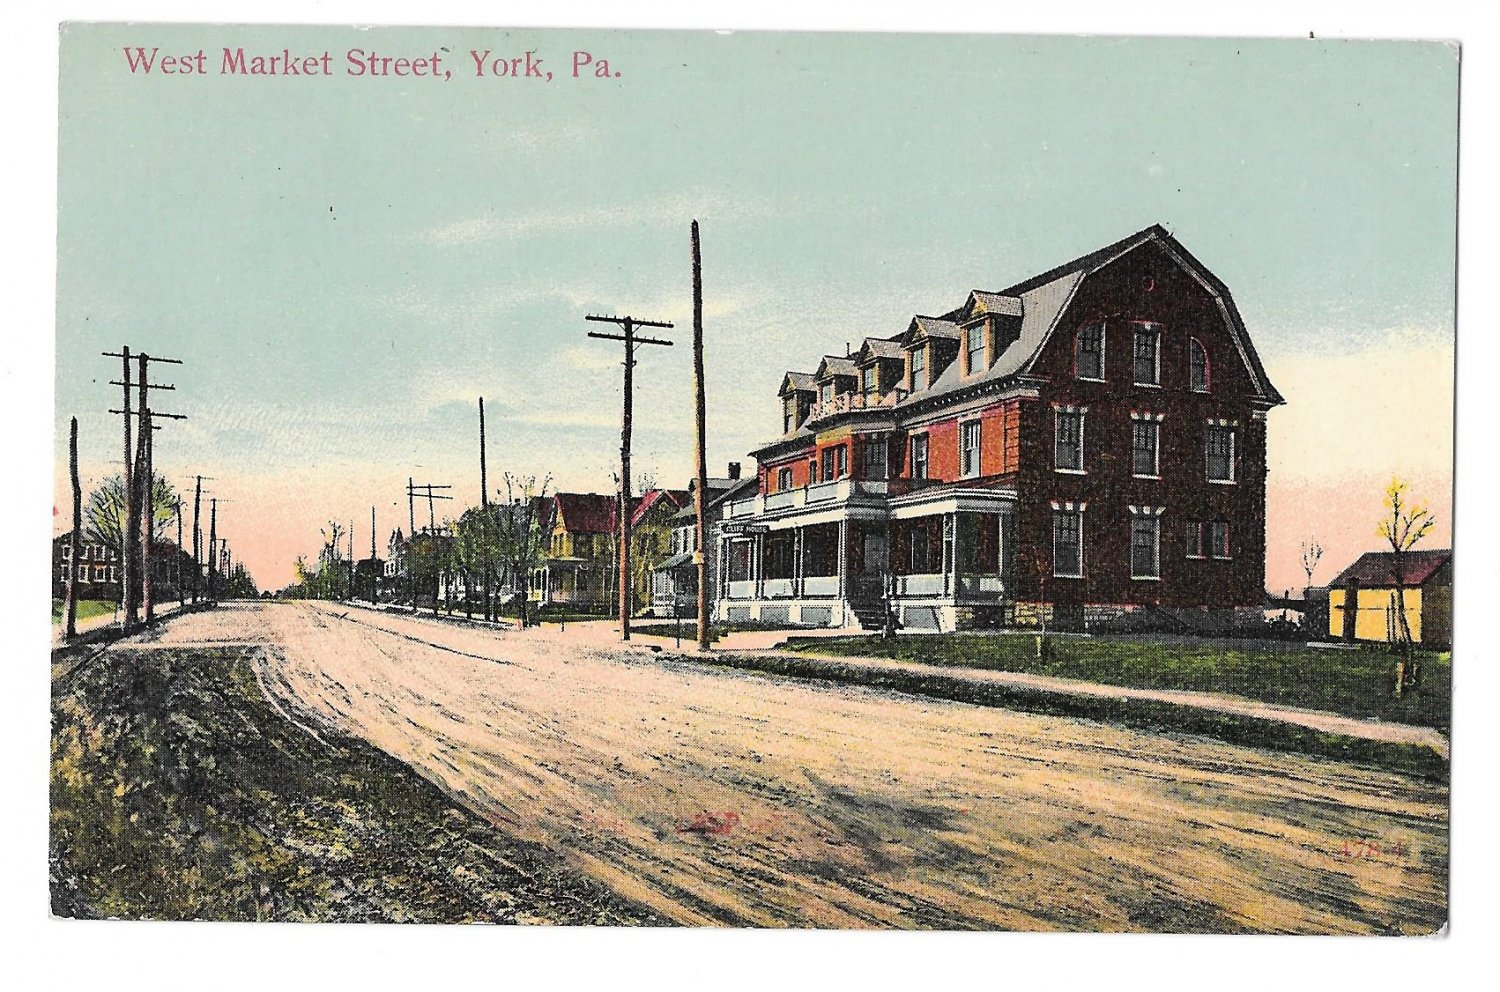 York PA West Market Street View Homes Vintage Postcard